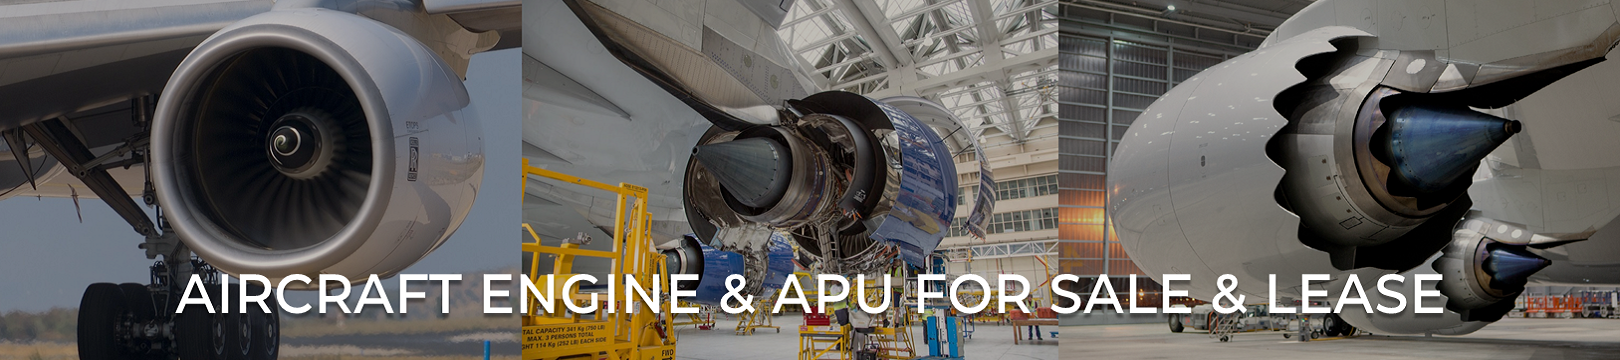 Aircraft Engine And APU For Sale And Lease | Available Aircraft Engines And APU For Sale And Lease | Pratt & Whitney Engines | General Electric Engines | CFM International Engines | Rolls-Royce Engines | International Aero Engines | Honeywell Engines | Aircraft Engine Stands For Sale And Lease | AIC JETS Corporation